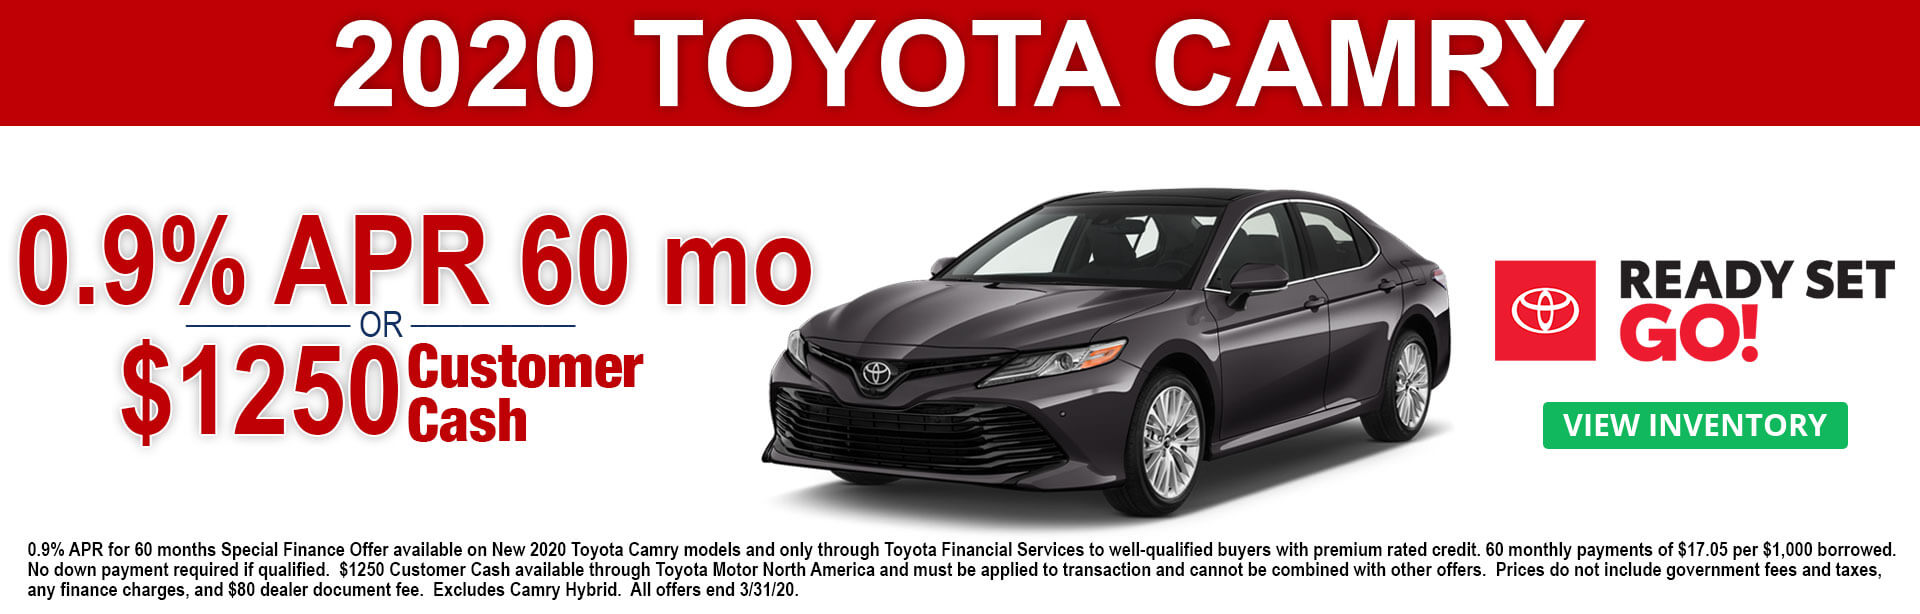 2020 Toyota Camry APR and Customer Cash Offers